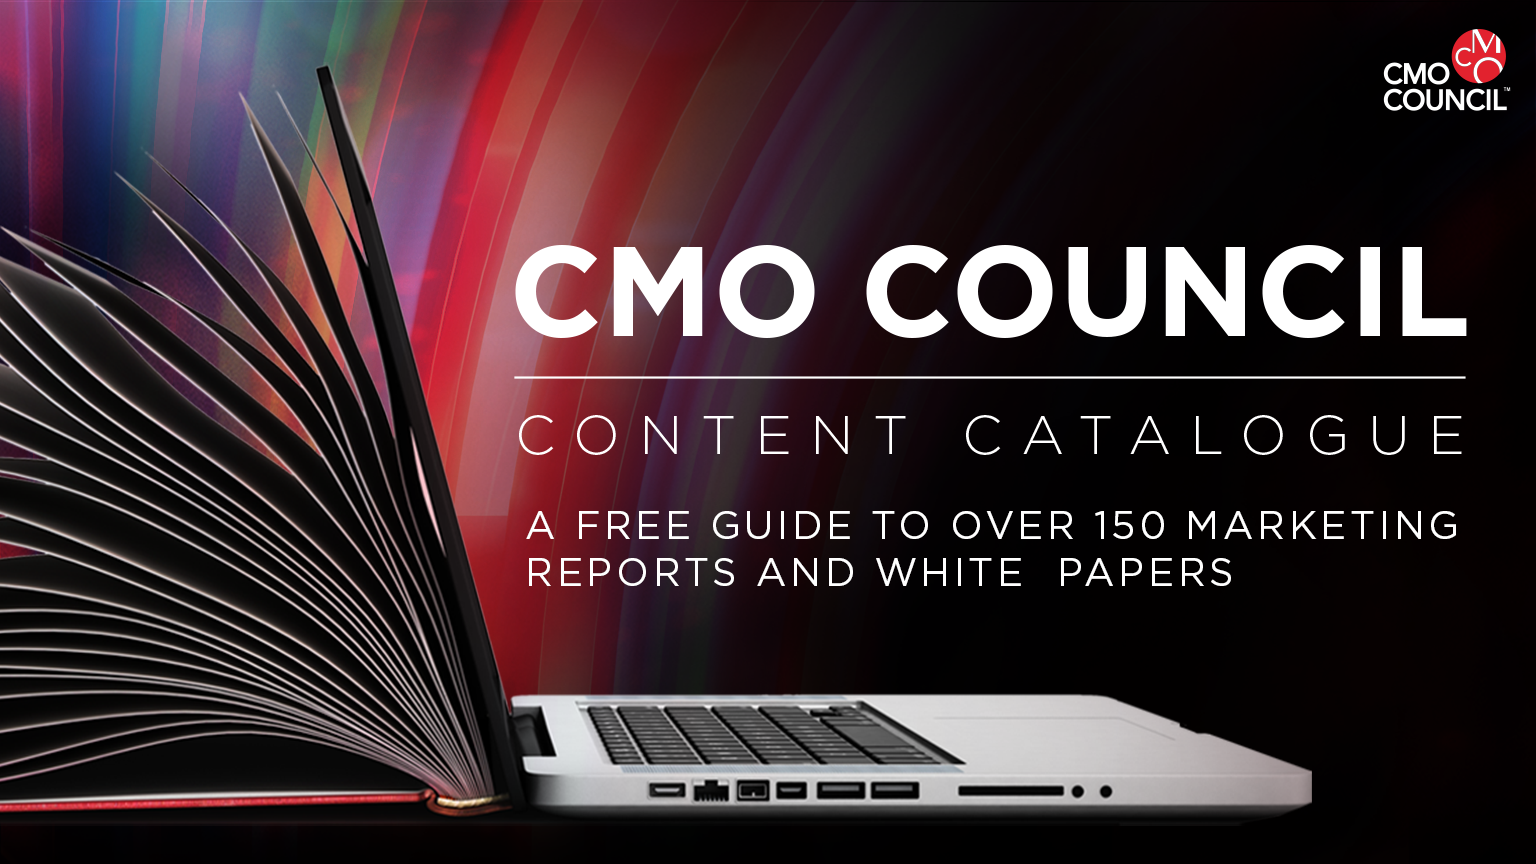 CMO Council Content Catalogue